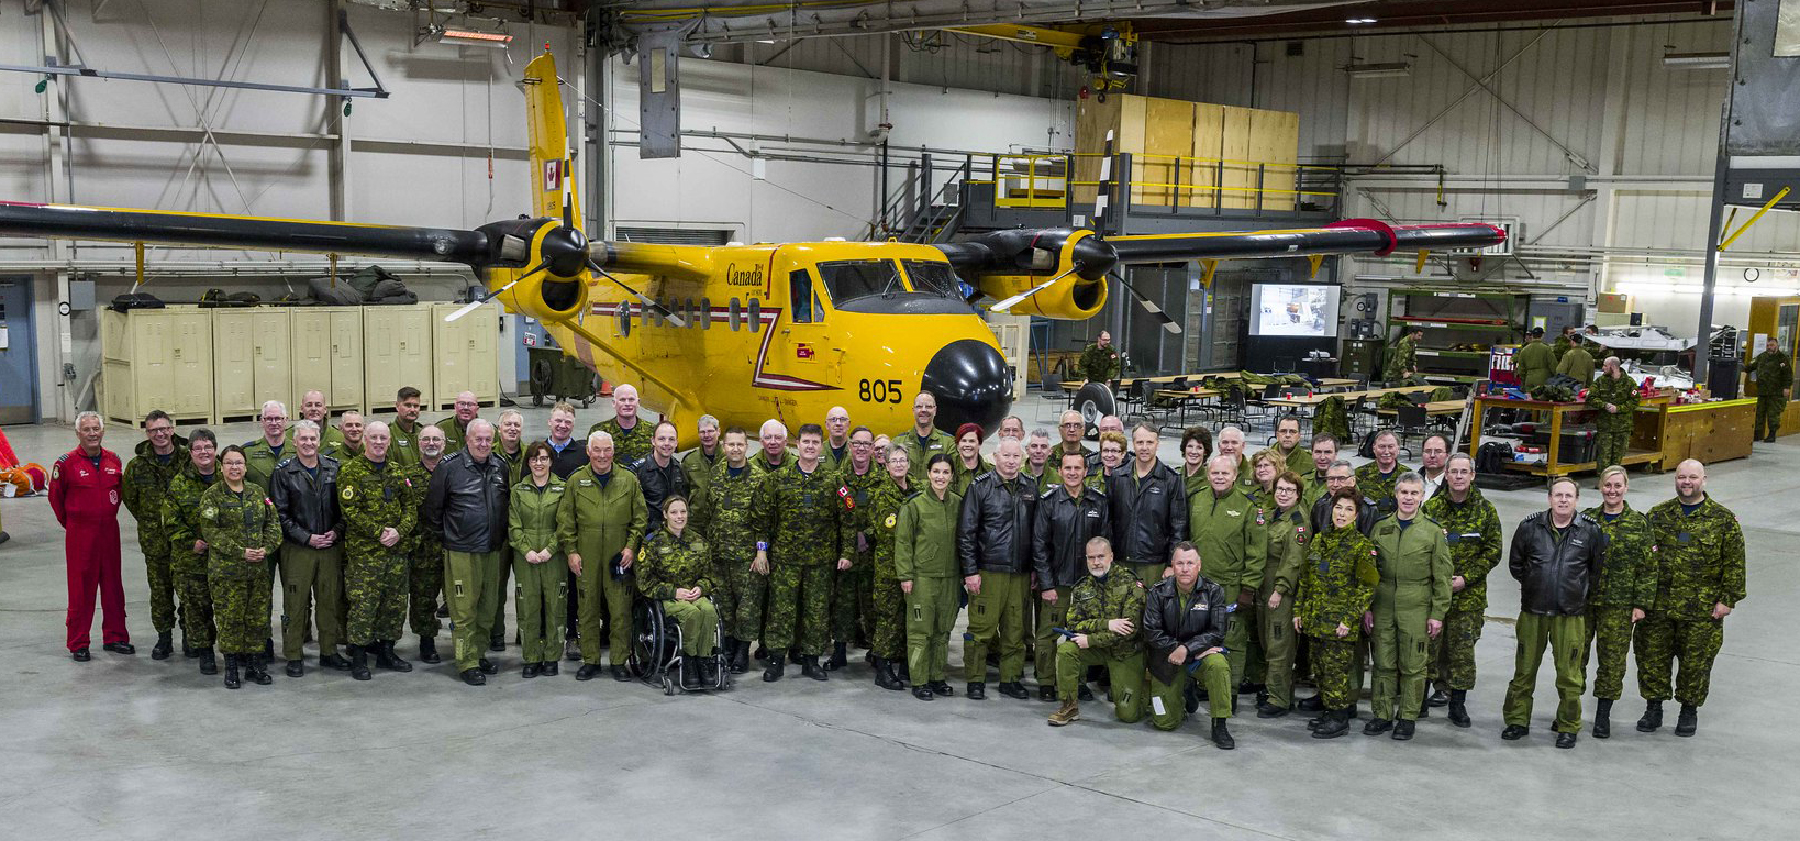 A large group of people, one wearing an orange flightsuit and the rest in olive green, with some in black leather jackets, gather beside a small yellow twin-engine ai\rcraft.